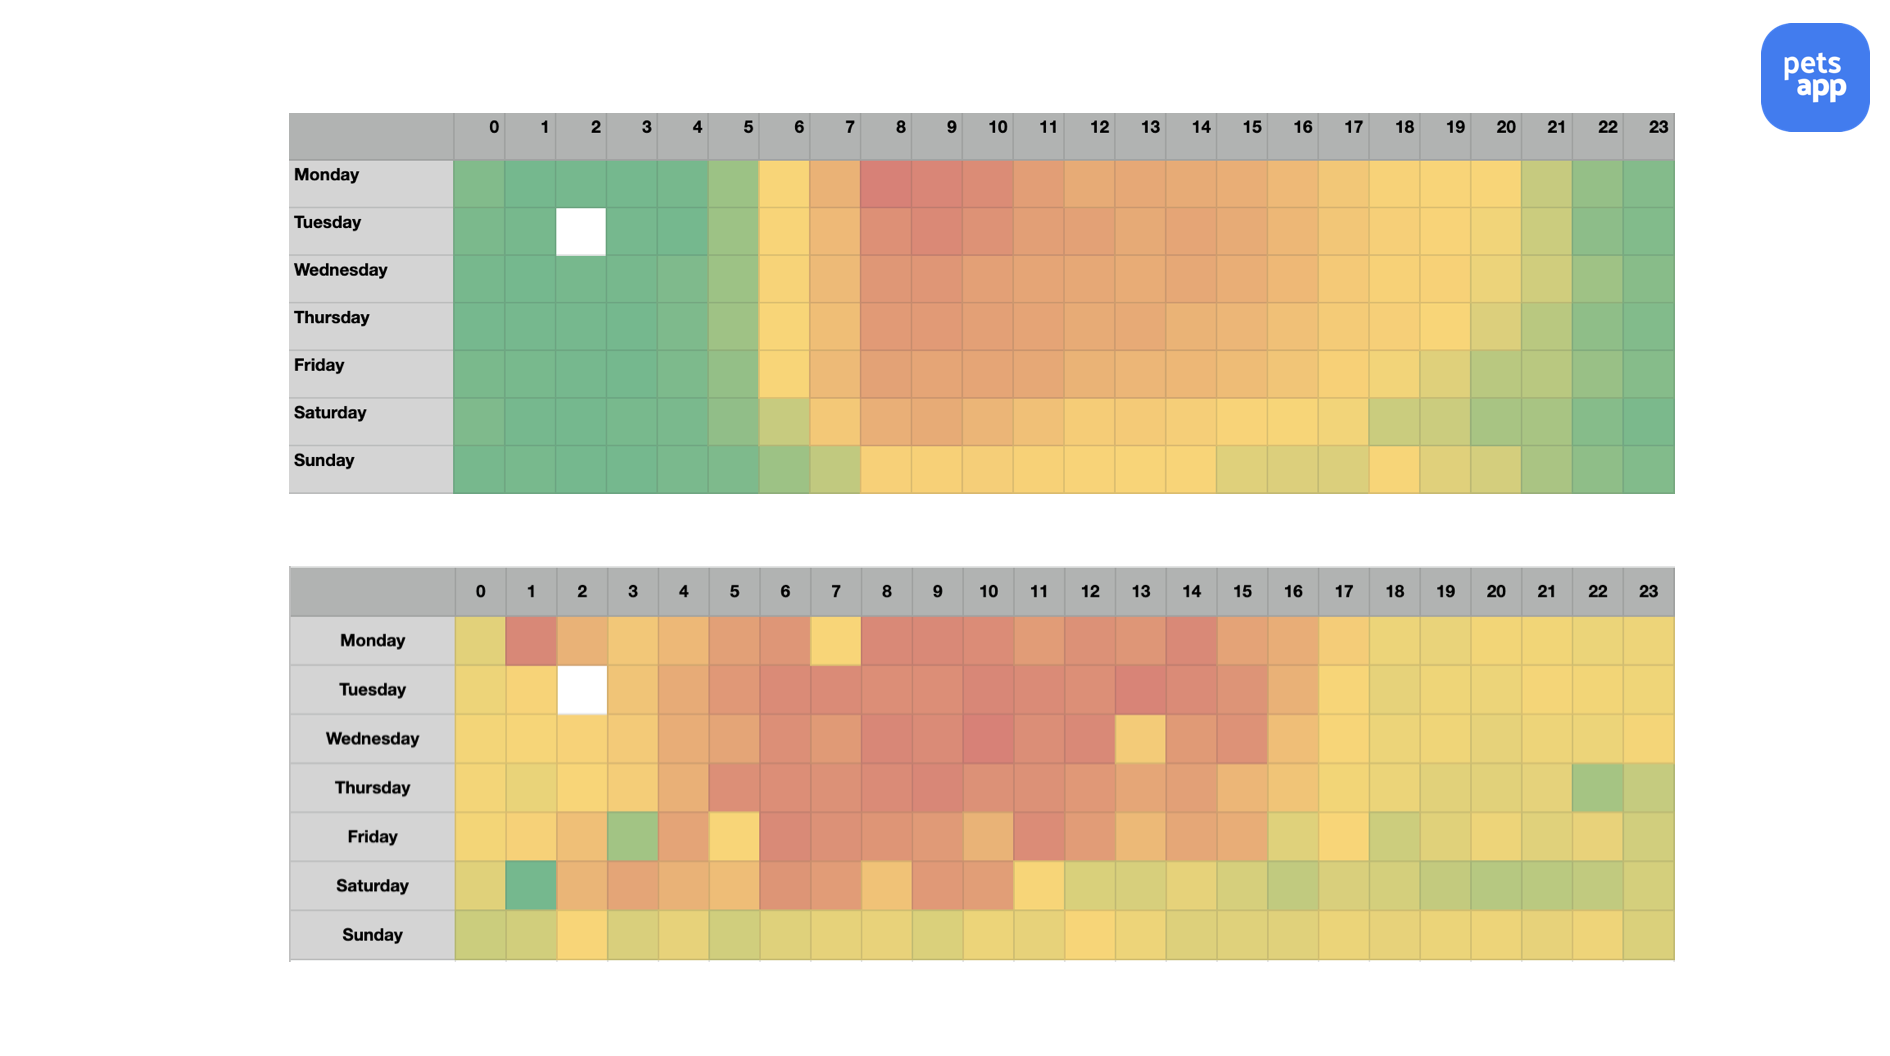 popular chat times and response times heat map